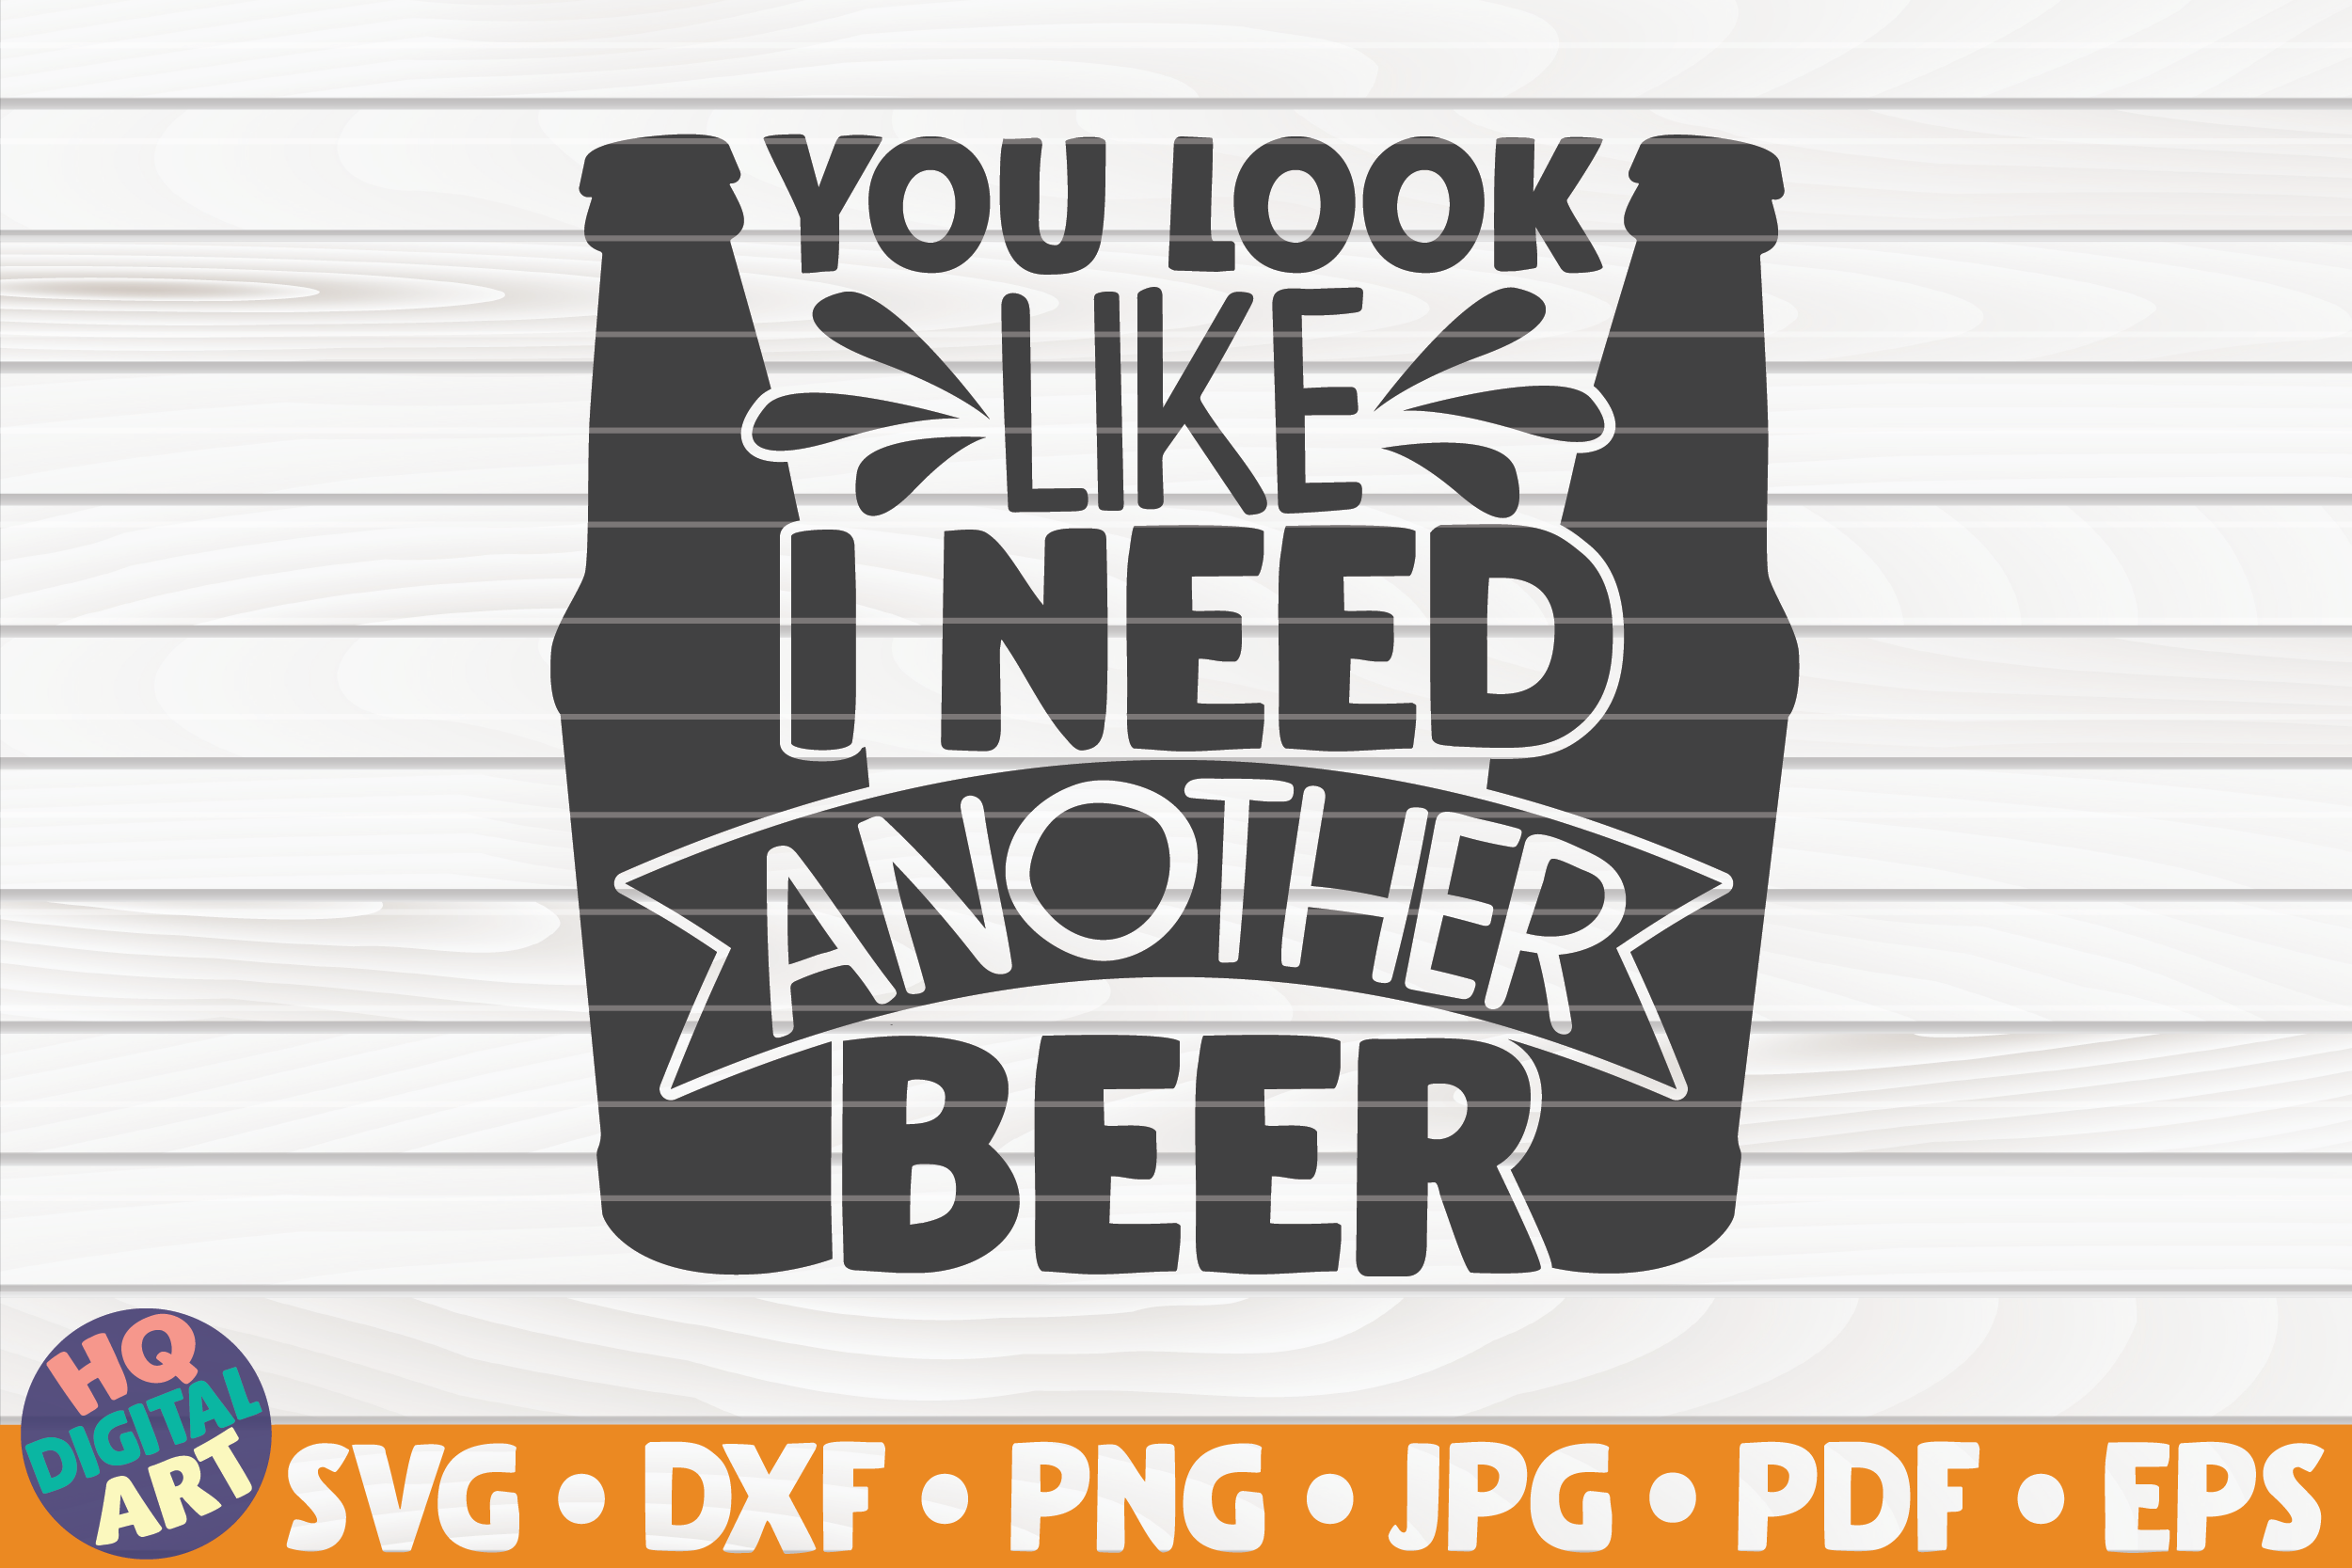 Download Free You Look Like I Need Another Beer Svg Graphic By Mihaibadea95 for Cricut Explore, Silhouette and other cutting machines.